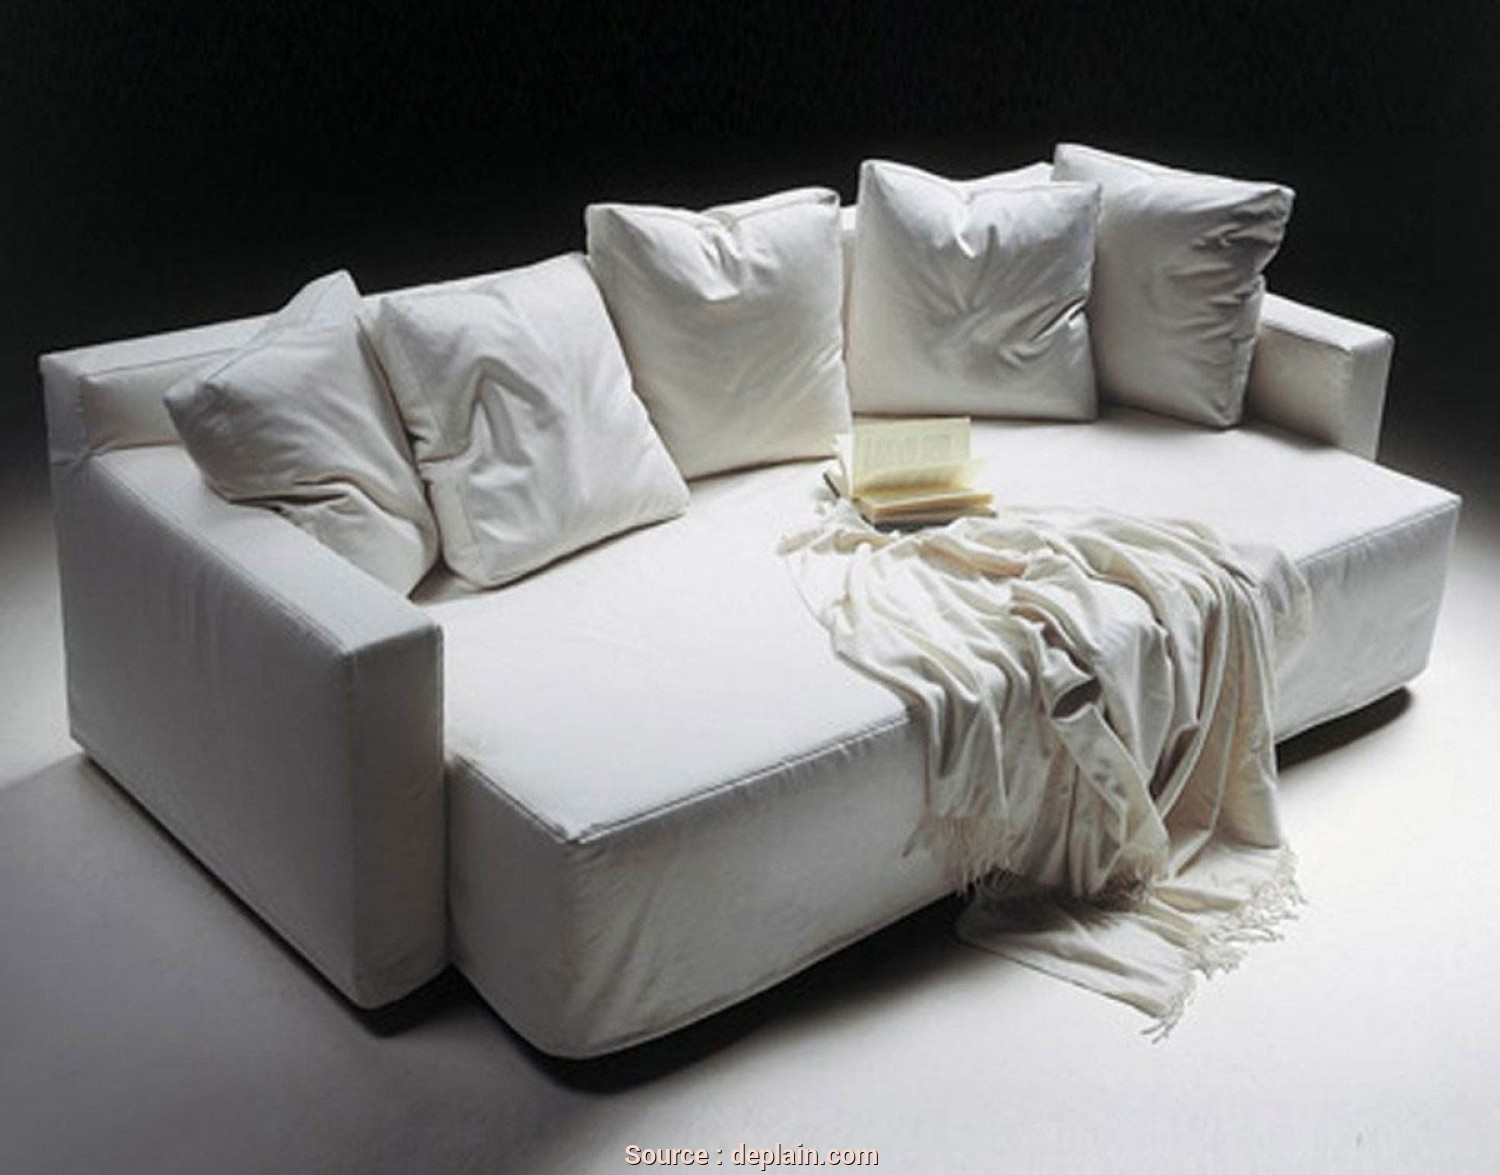 Divano Letto Winny Flexform Prezzo, Incredibile Flexform Winny, Sofa By Guido Rosati